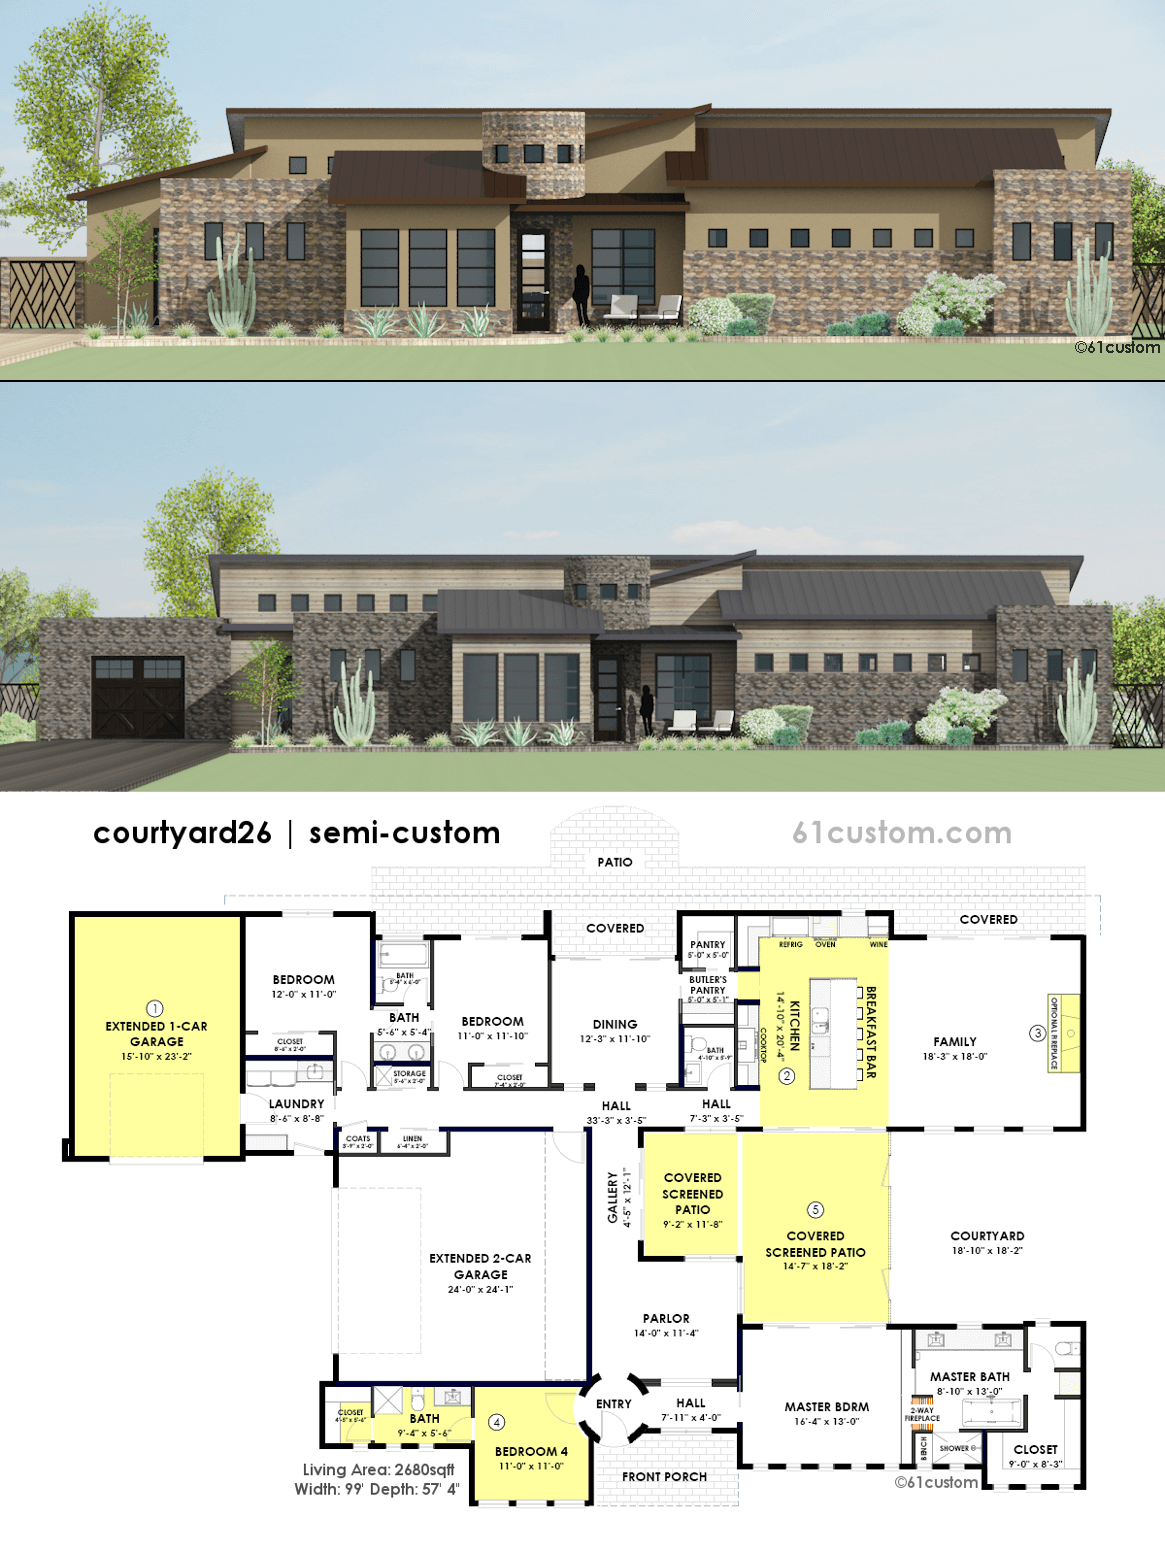 Contemporary side courtyard house plan 61custom for Modern unique house plans